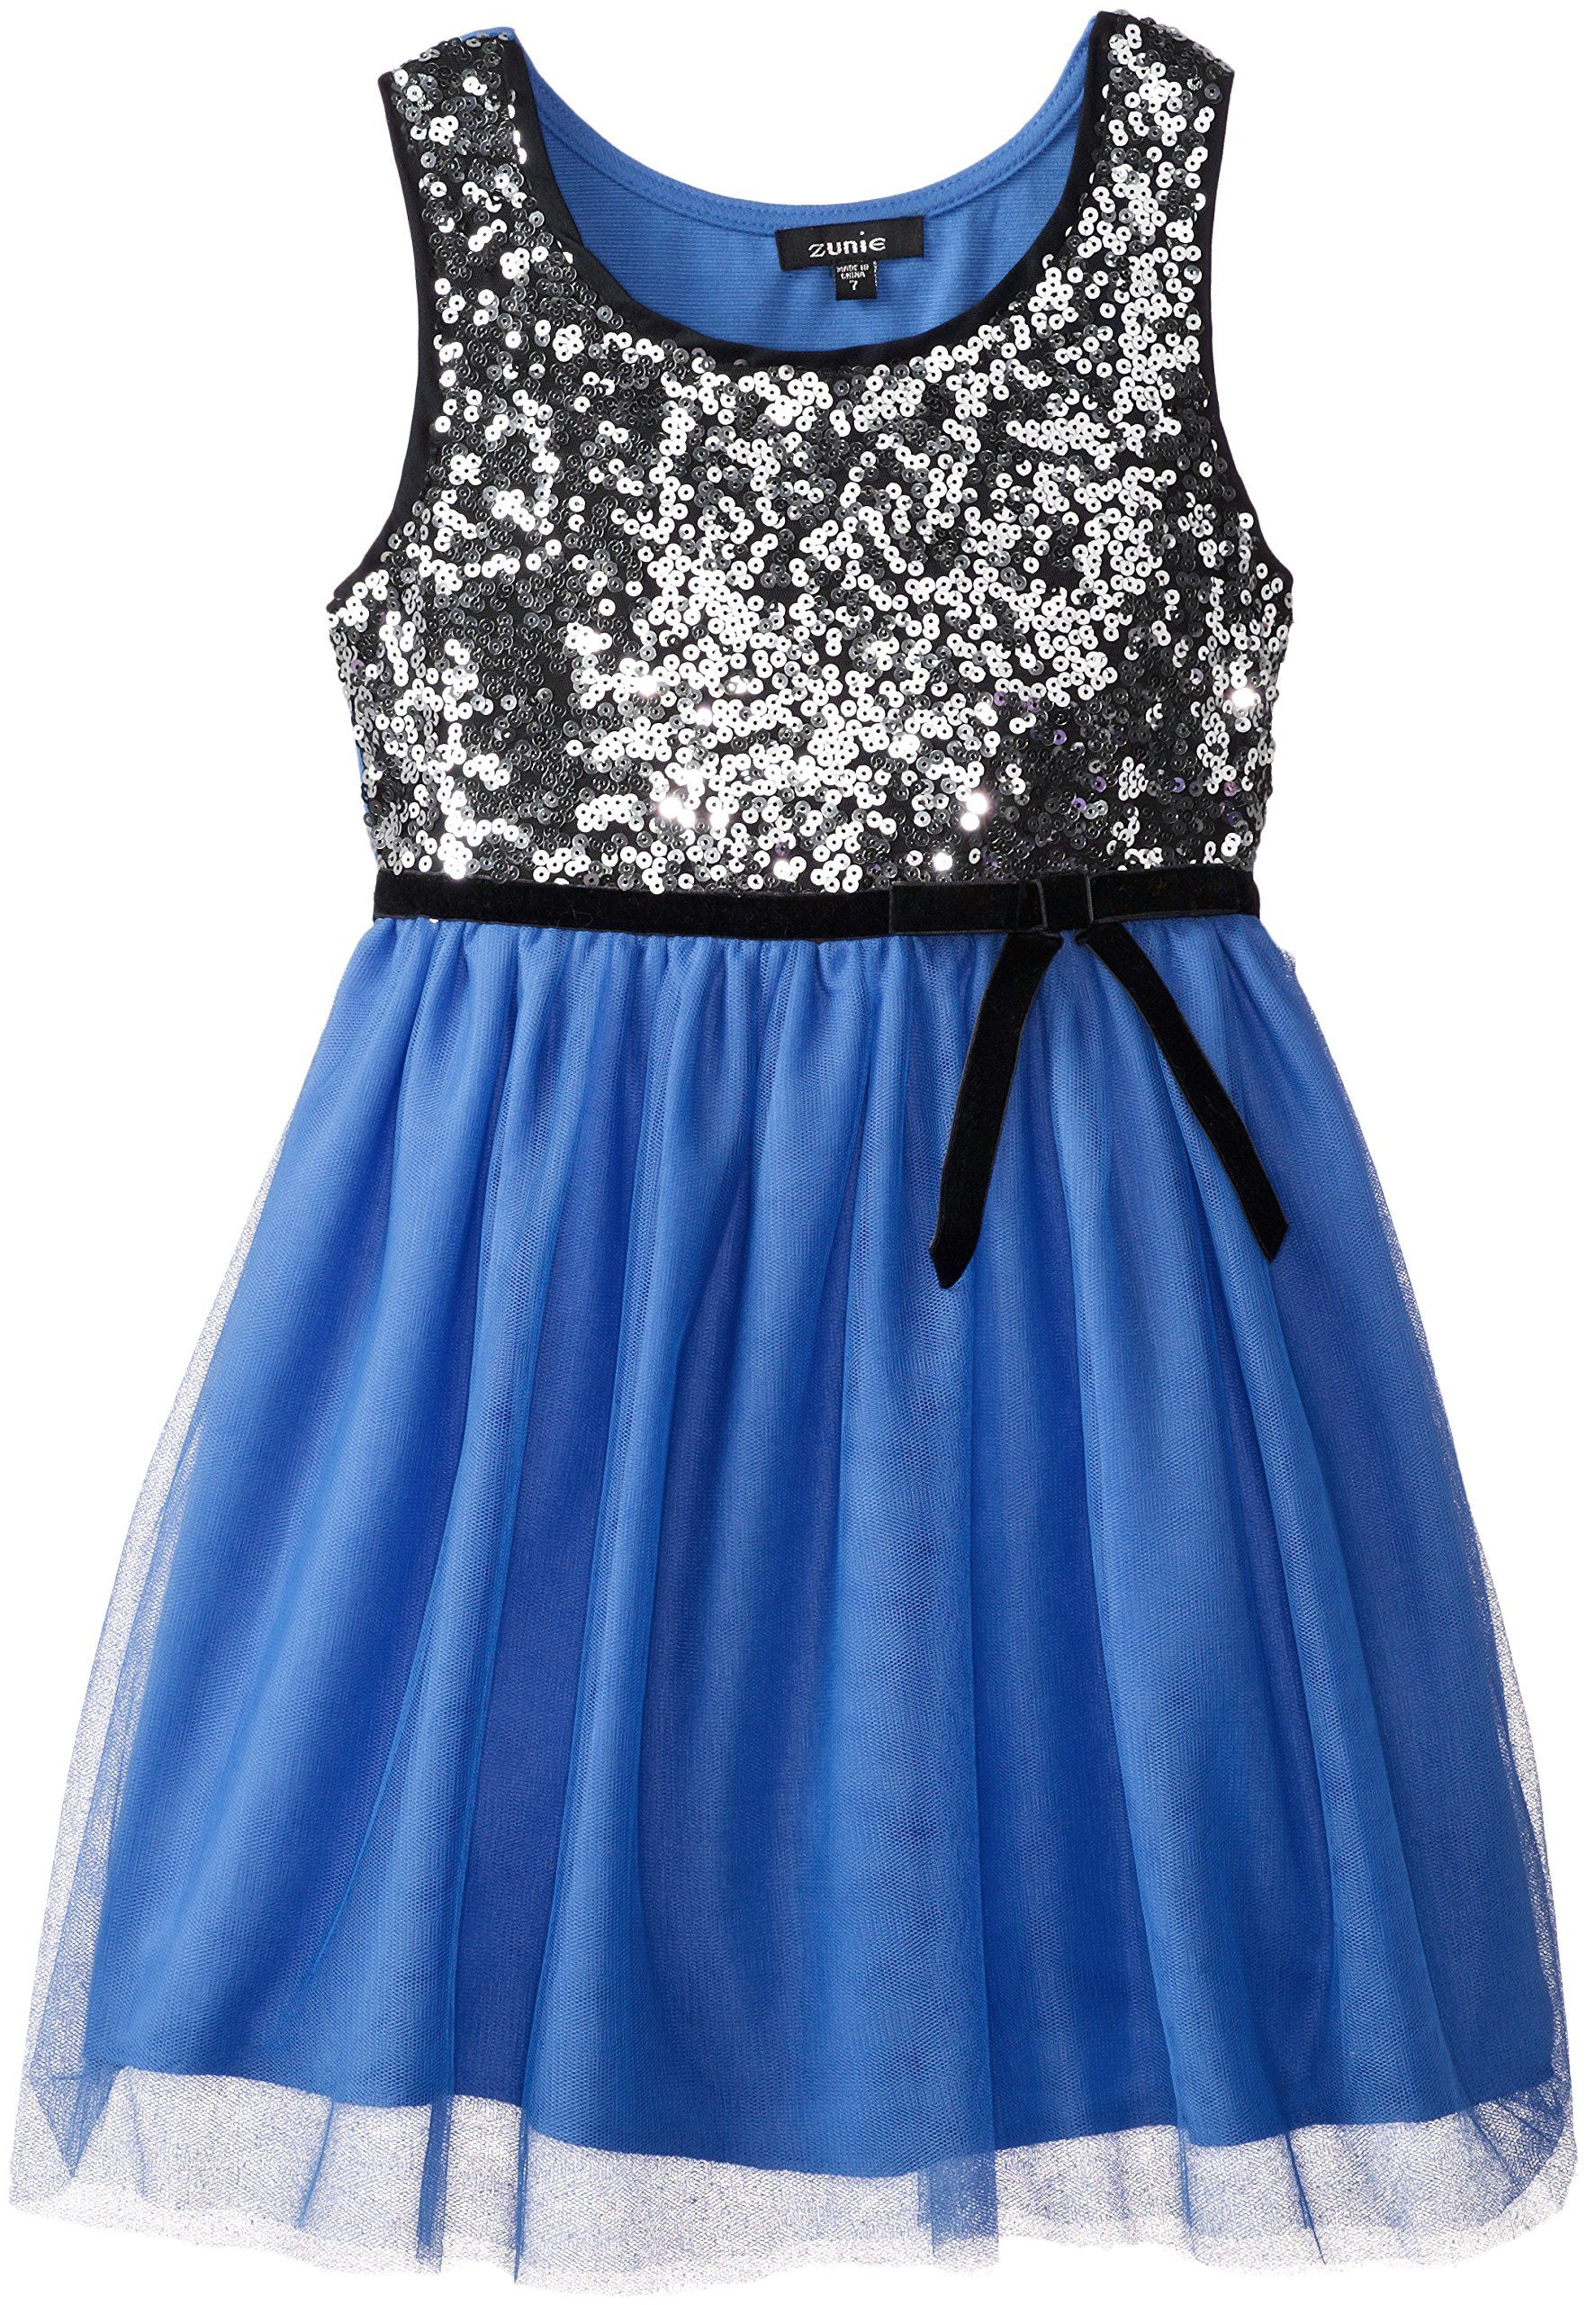 Father Daughter Dance Dresses For Girls Amazon